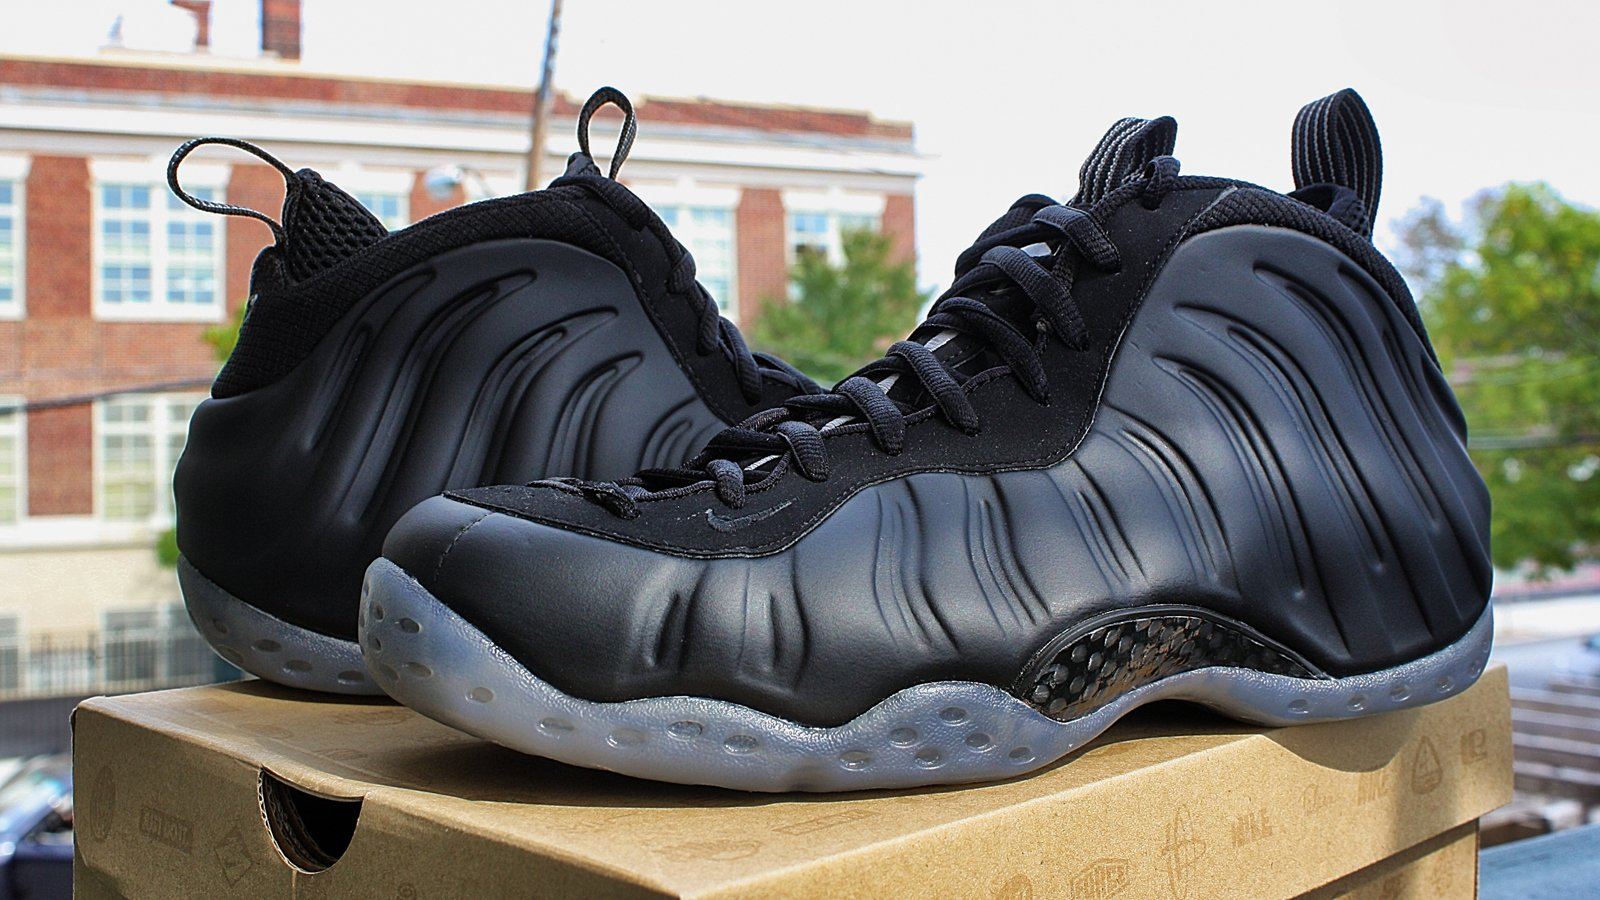 52103be7ffd Nike Air Foamposite One  Stealth  - Another Look